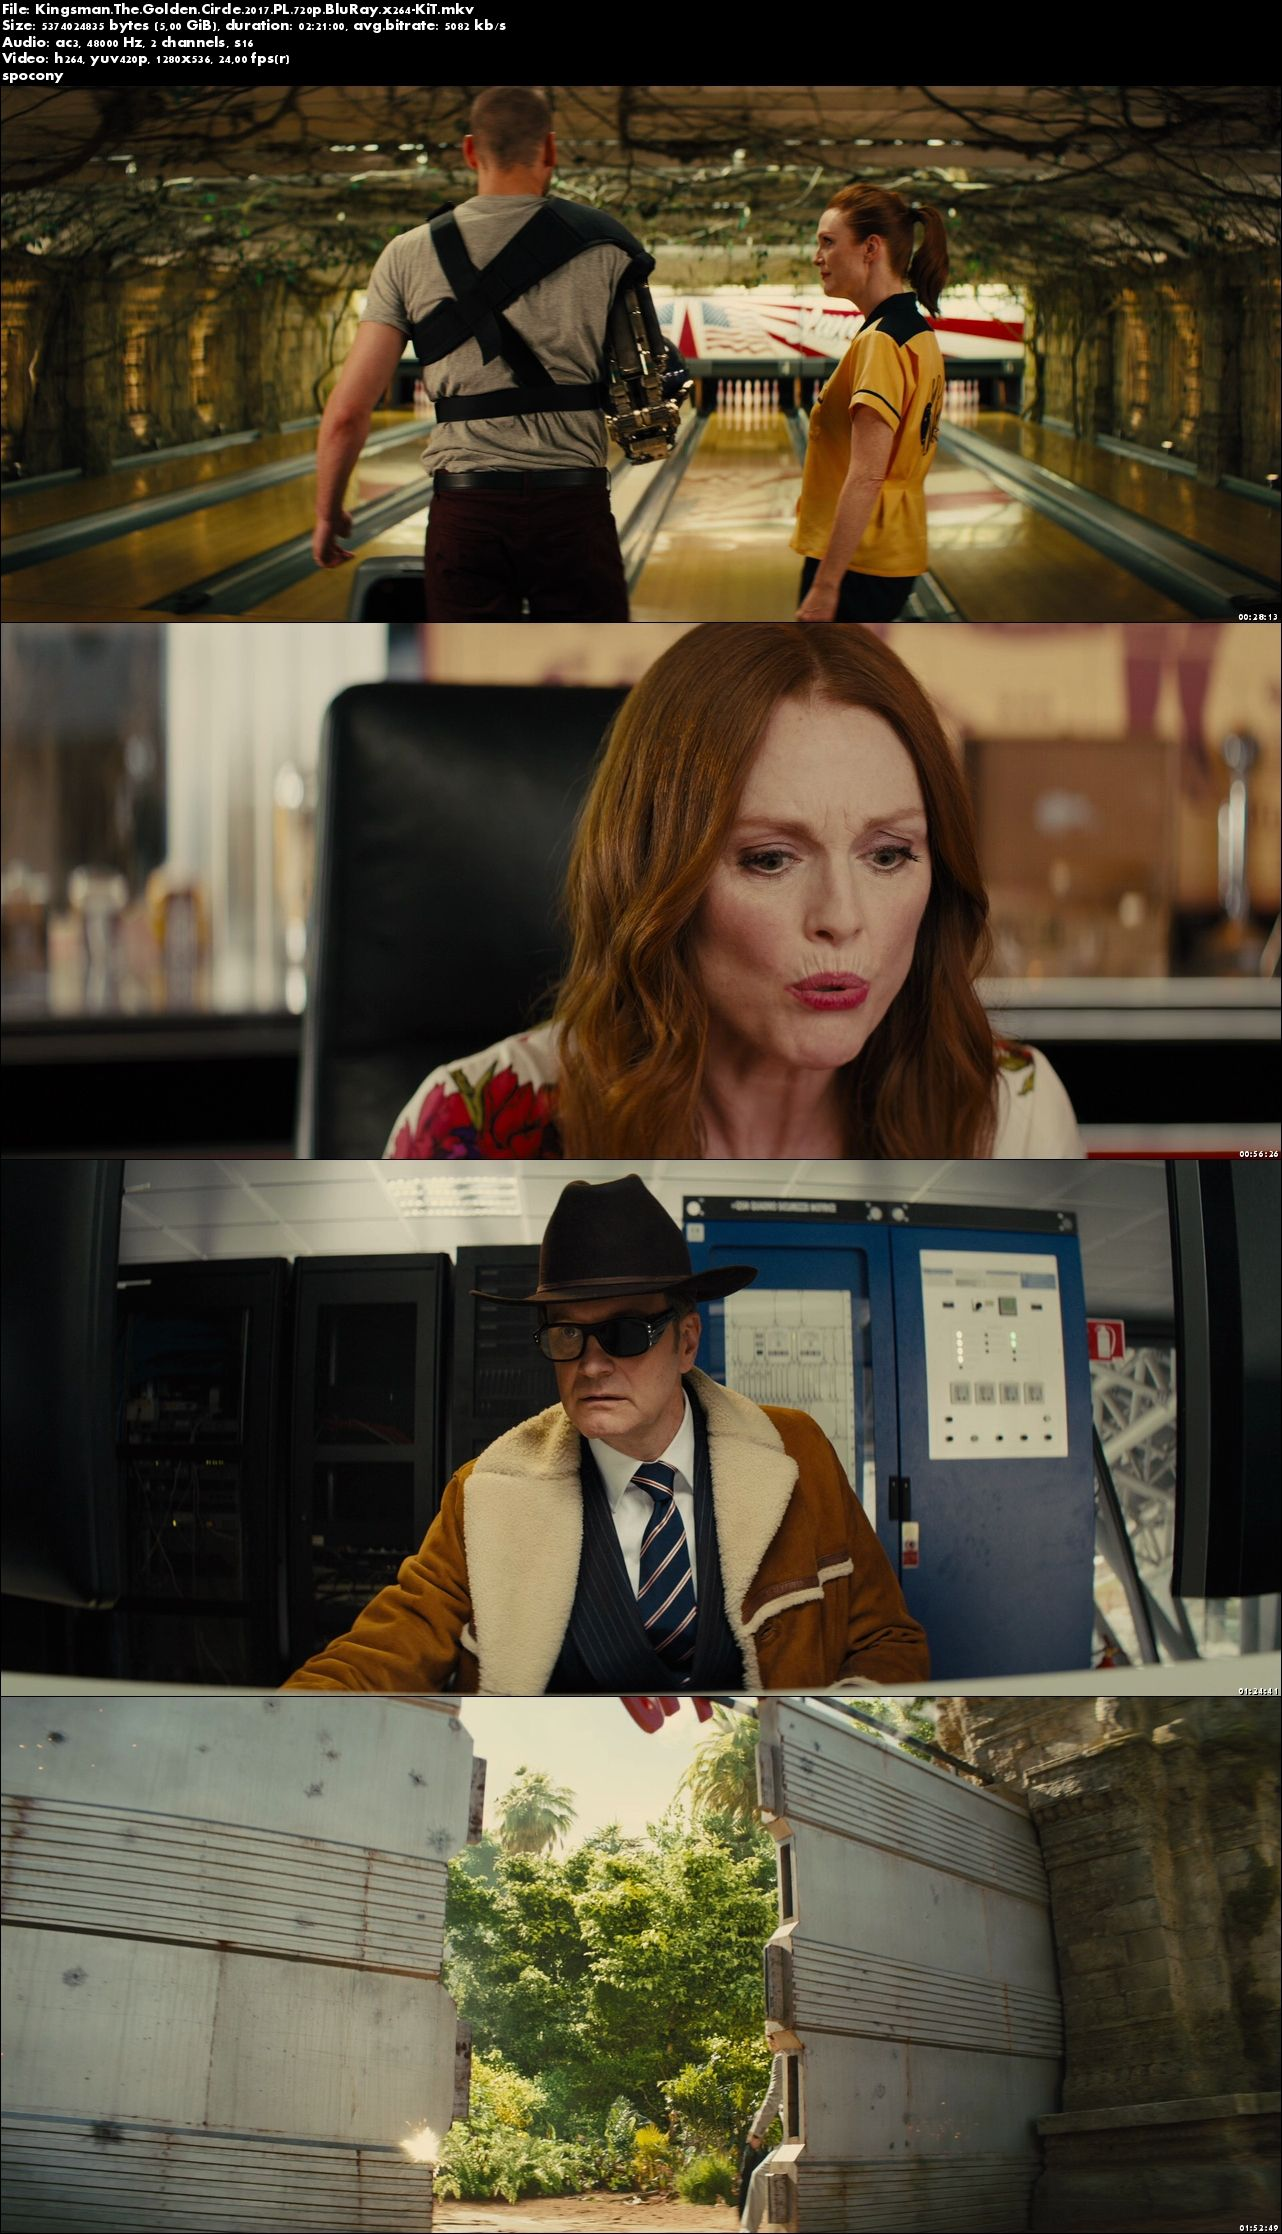 Kingsman: Złoty krąg / Kingsman: The Golden Circle (2017) PL.720p.BluRay.x264-KiT [Lektor PL]